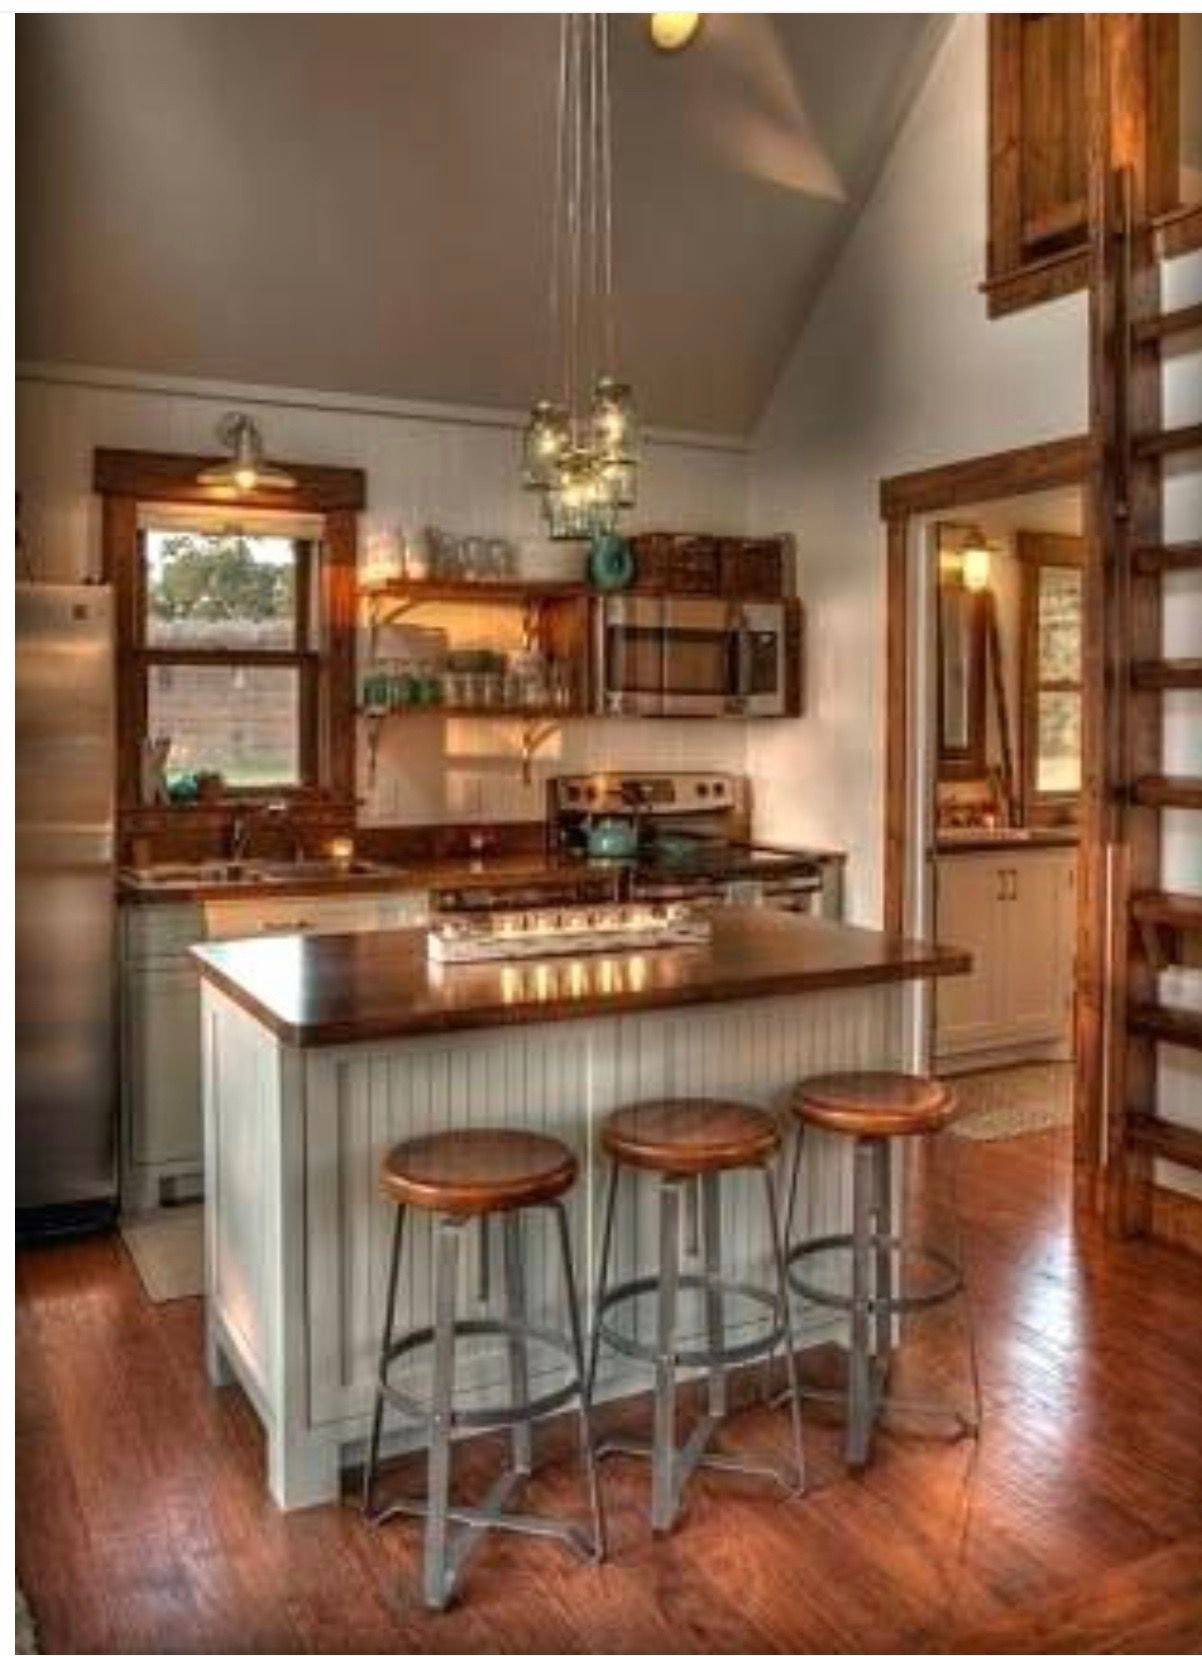 Pin By Catherine Taylor On Our Cabin Design Tiny House Kitchen Cottage Kitchens Cabin Kitchens